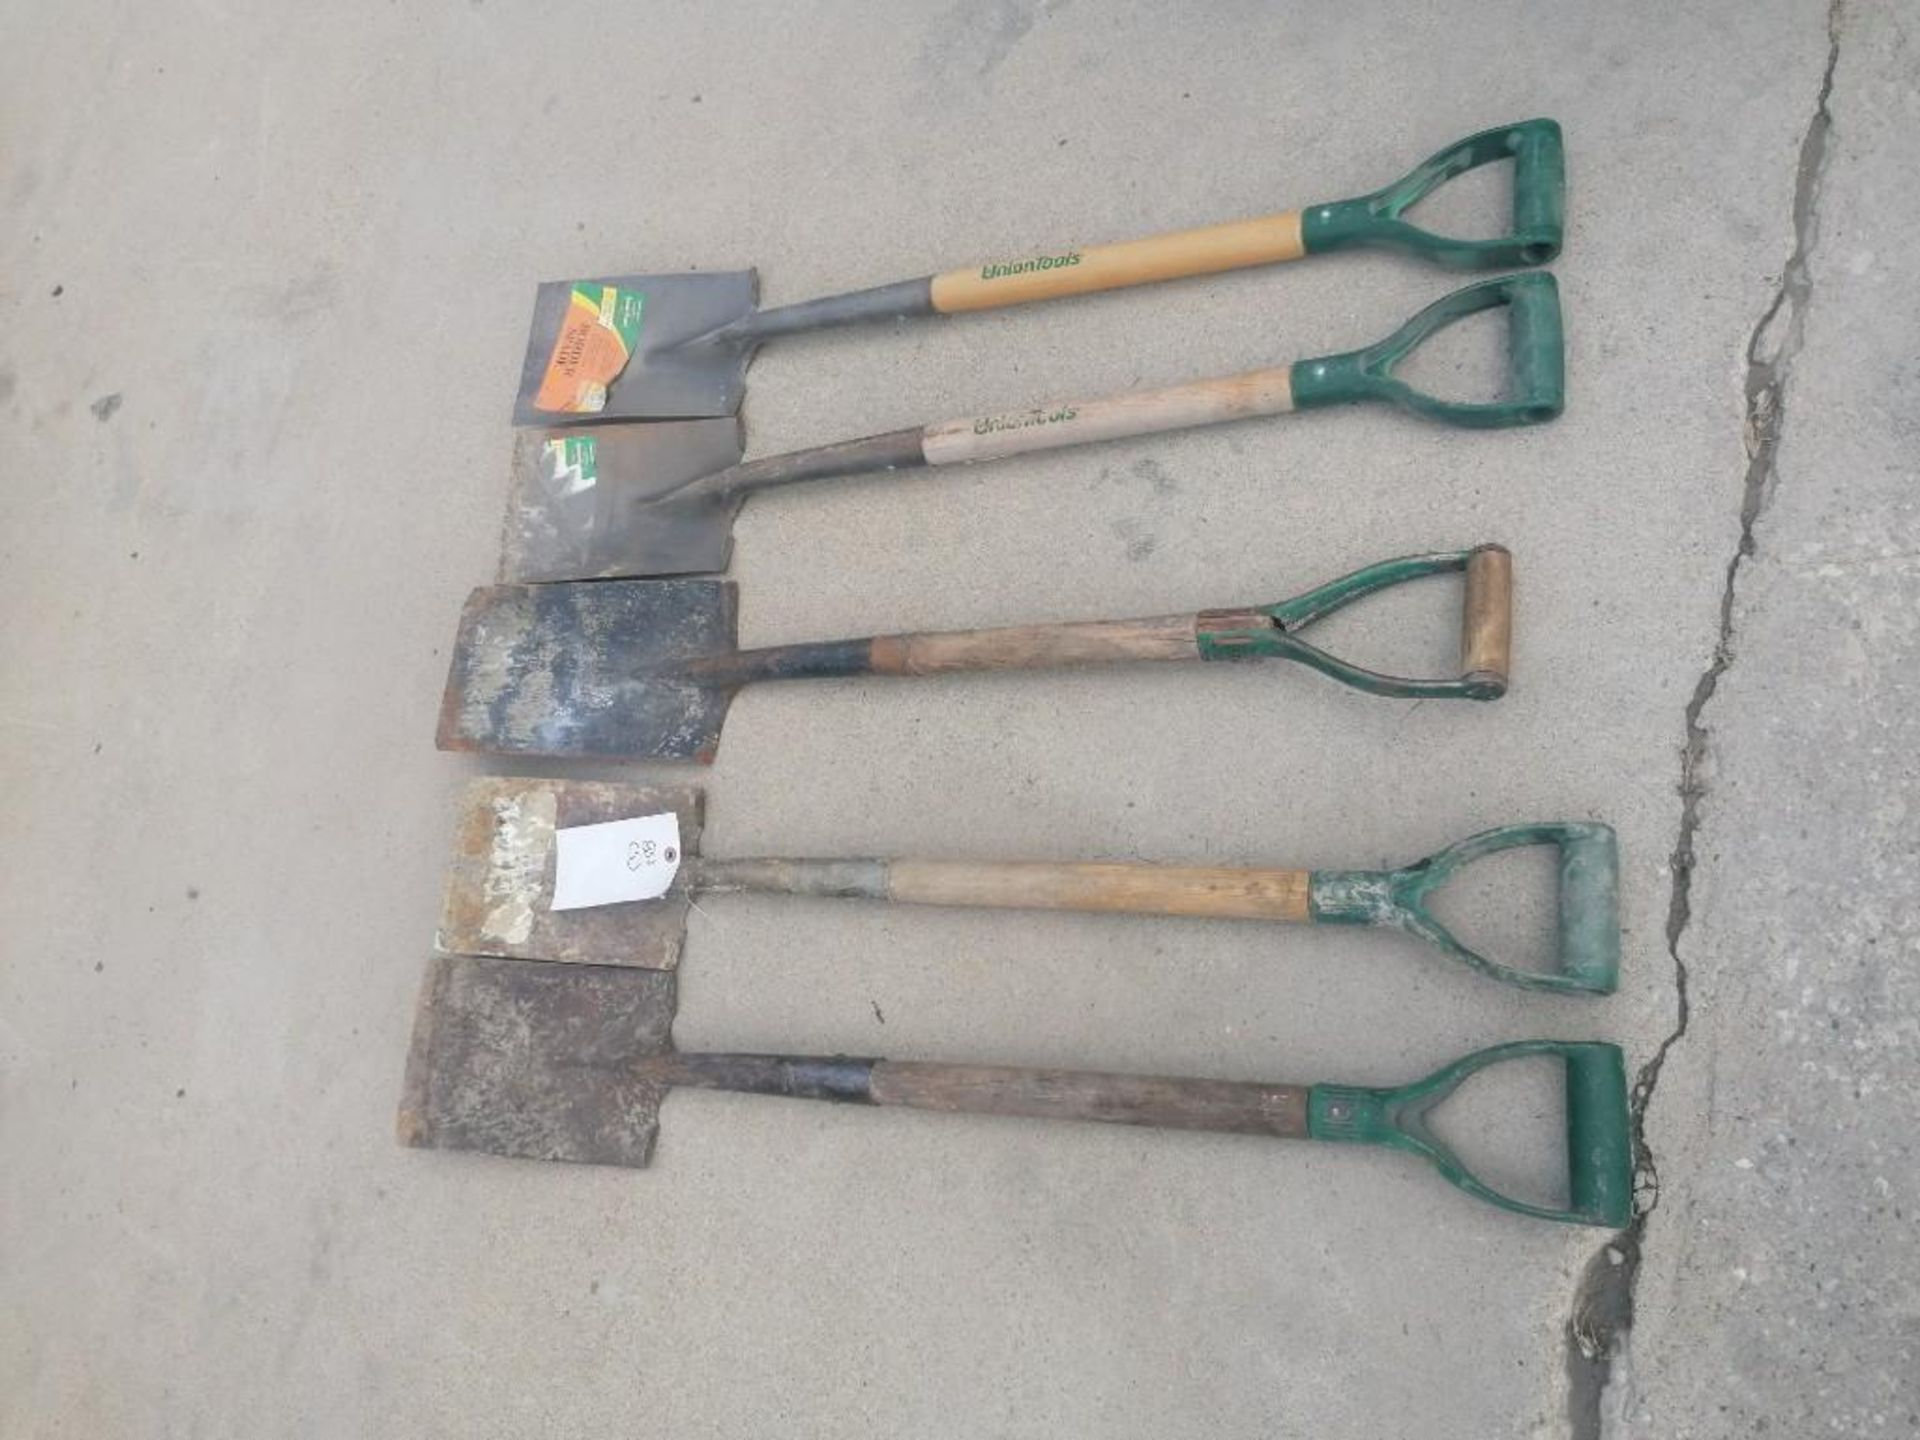 Lot 44 - (5) Shovels. Located at 301 E Henry Street, Mt. Pleasant, IA 52641.